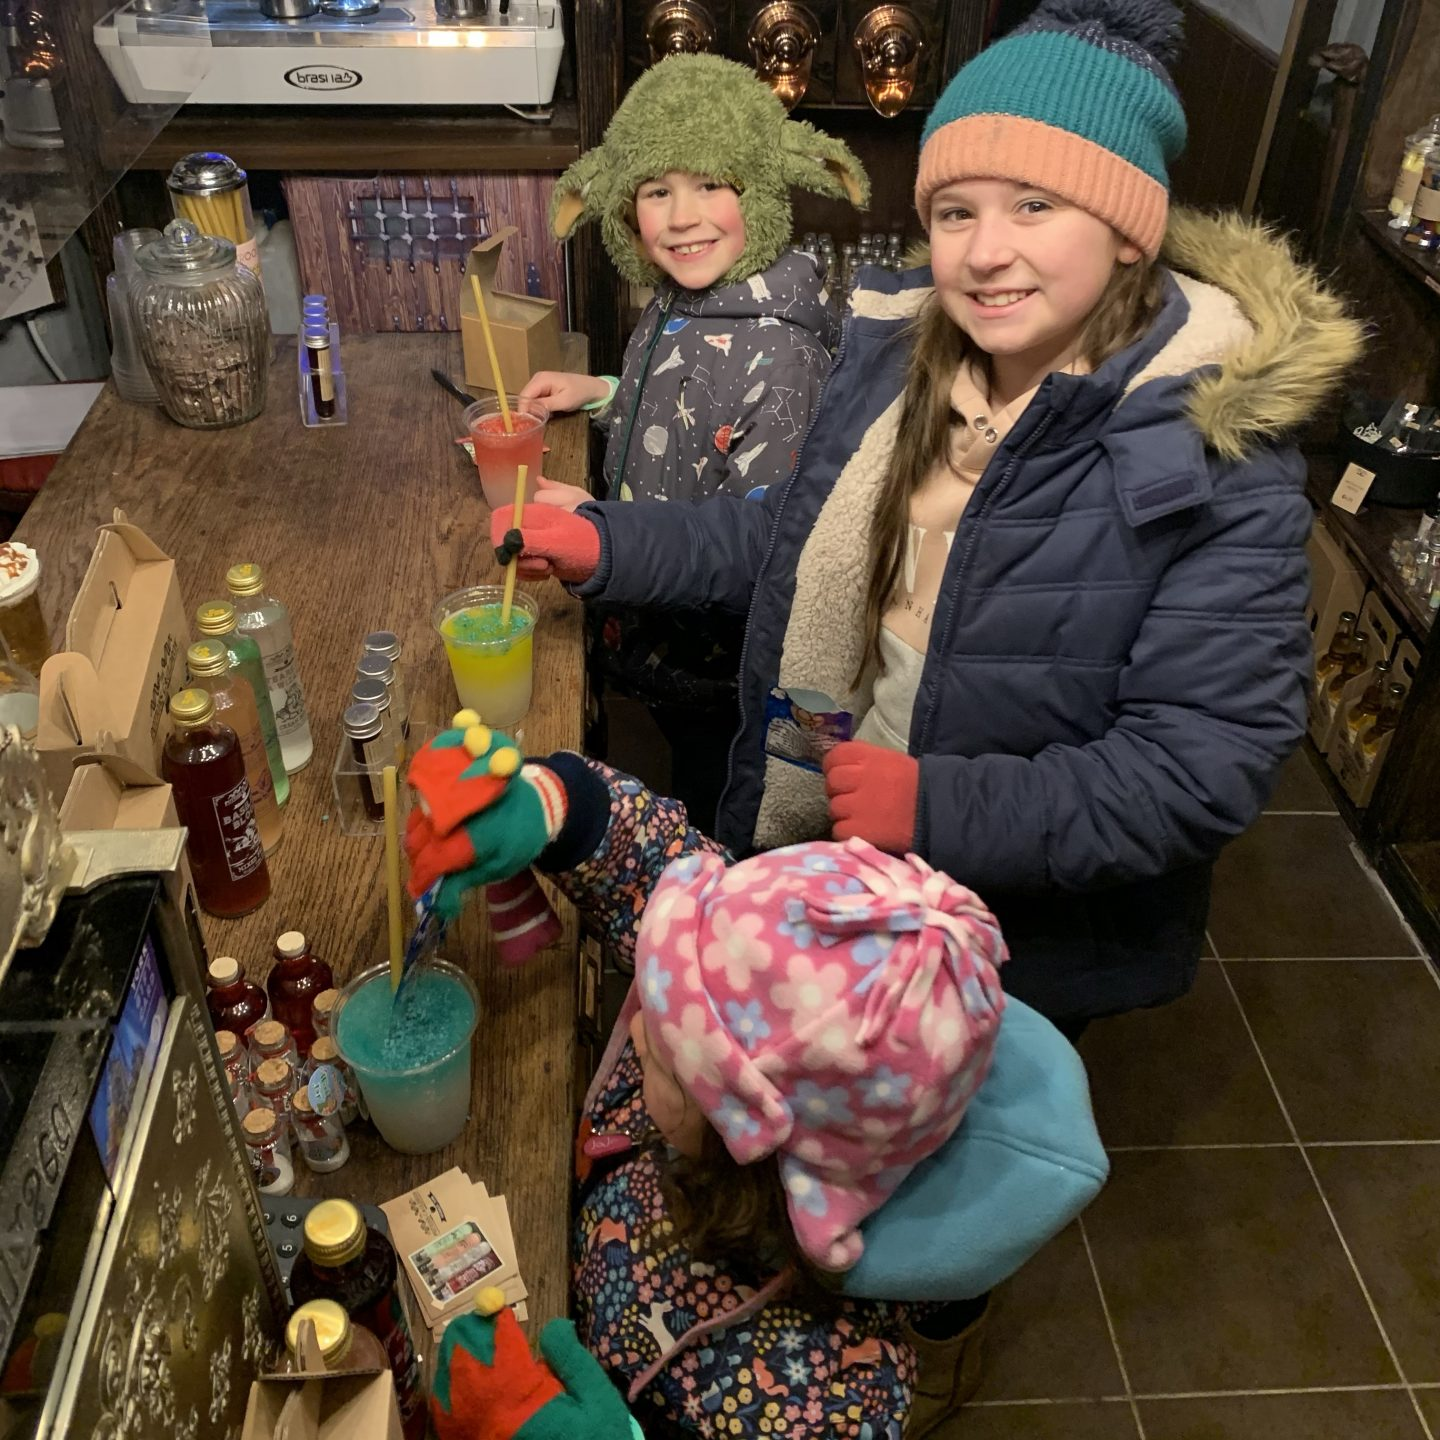 Christmas Holiday treat with a visit to Potions cauldron to make a potion